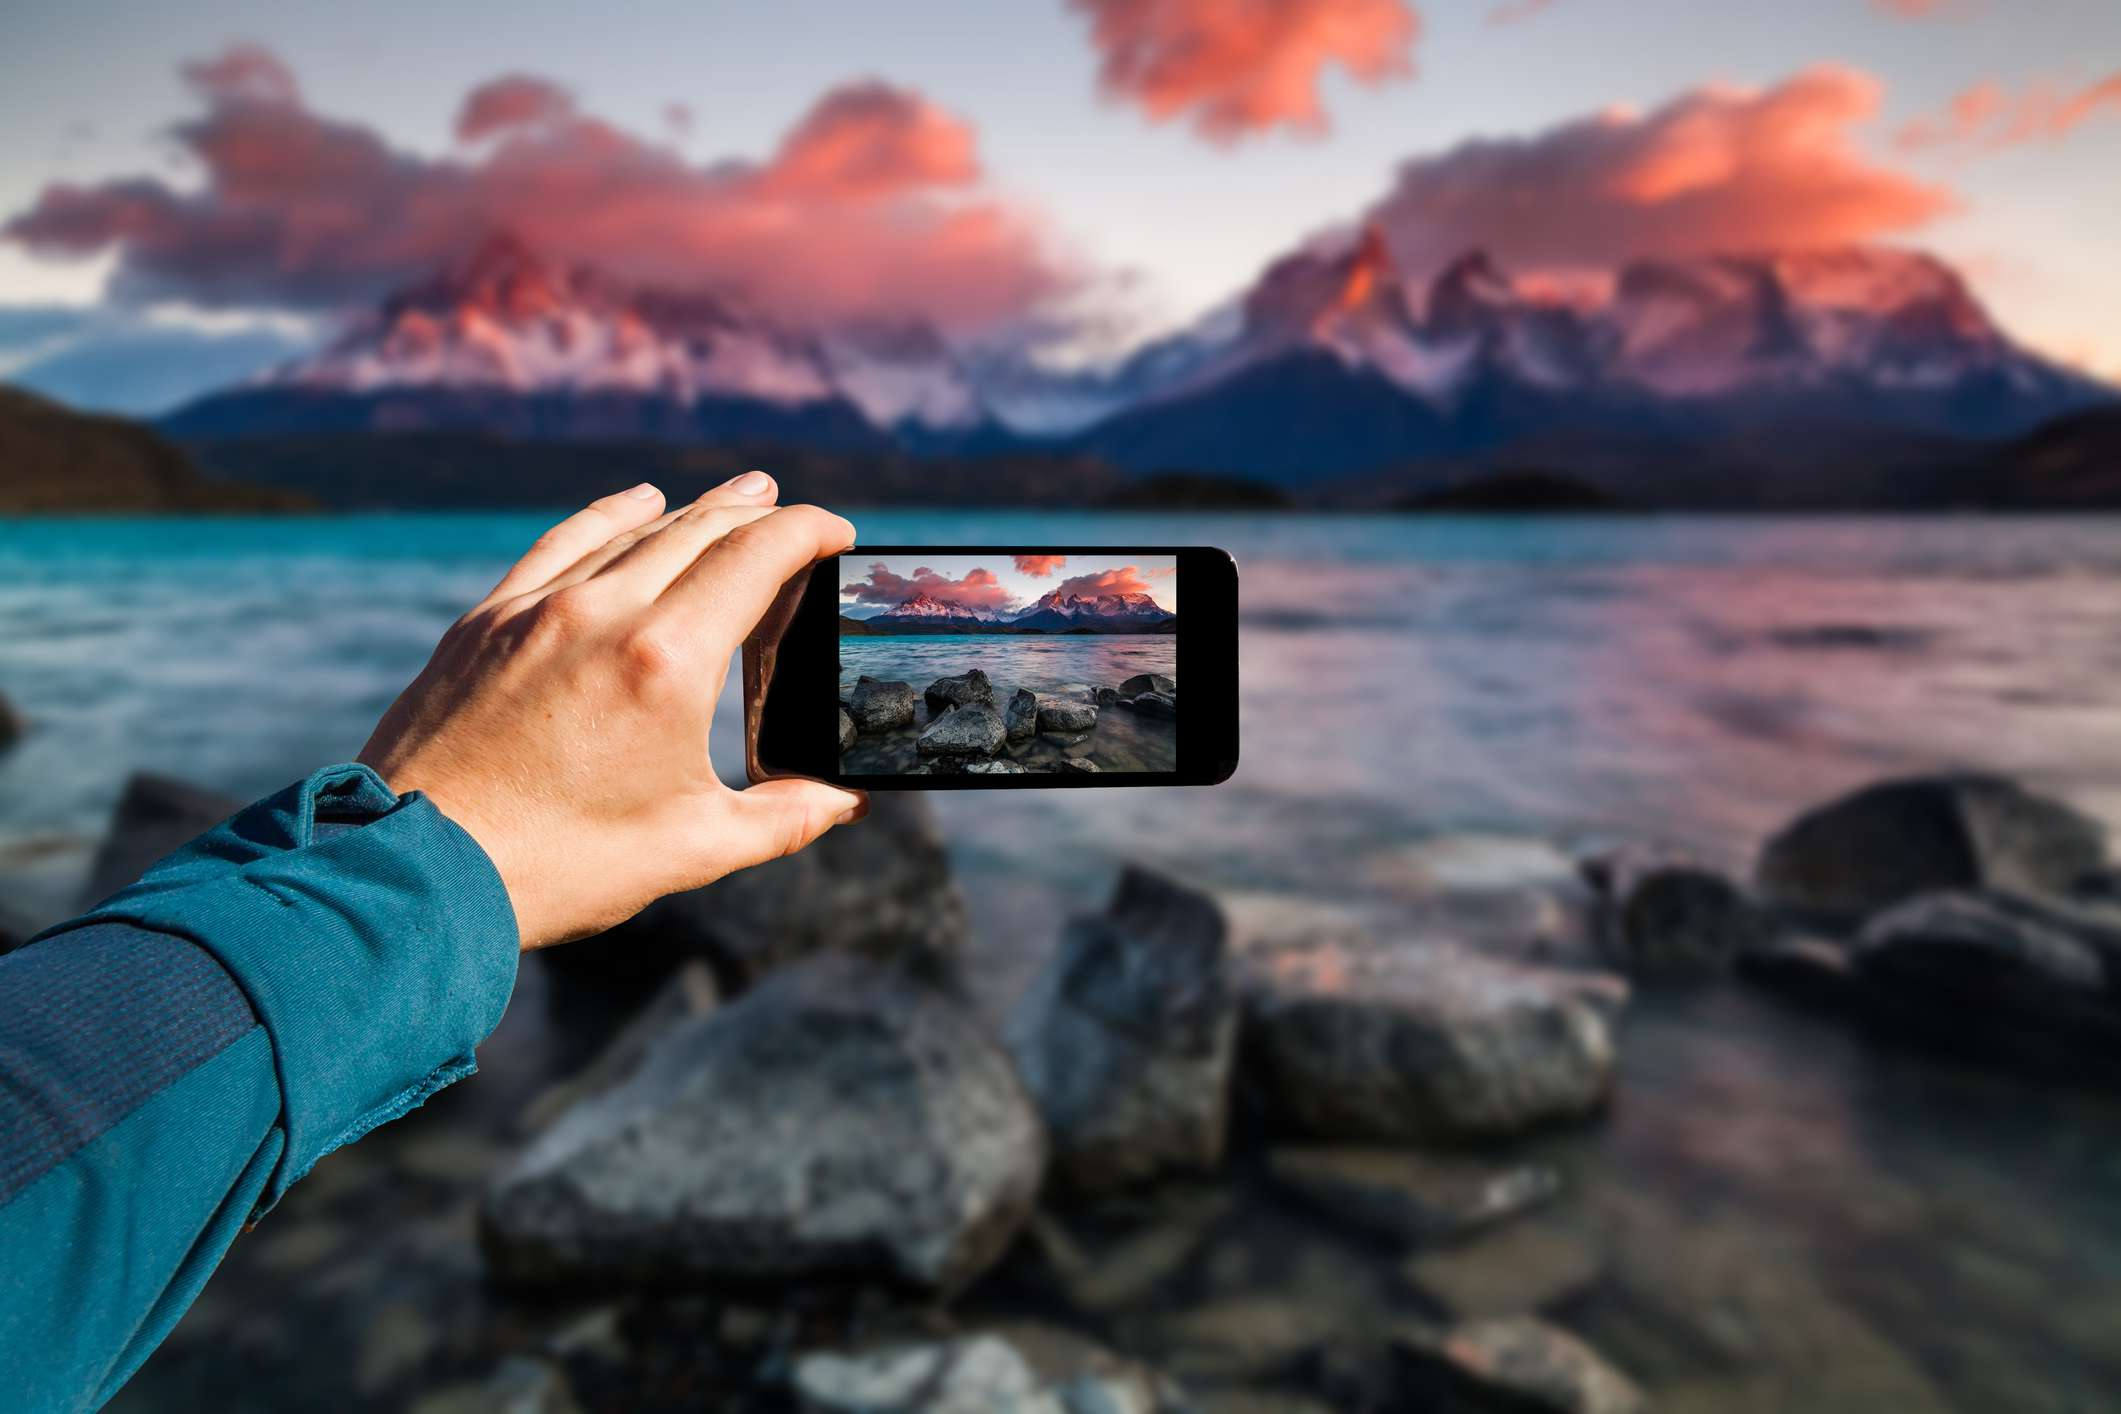 Someone taking a sunset picture of a lake with mountains in the bacground on a smartphone.